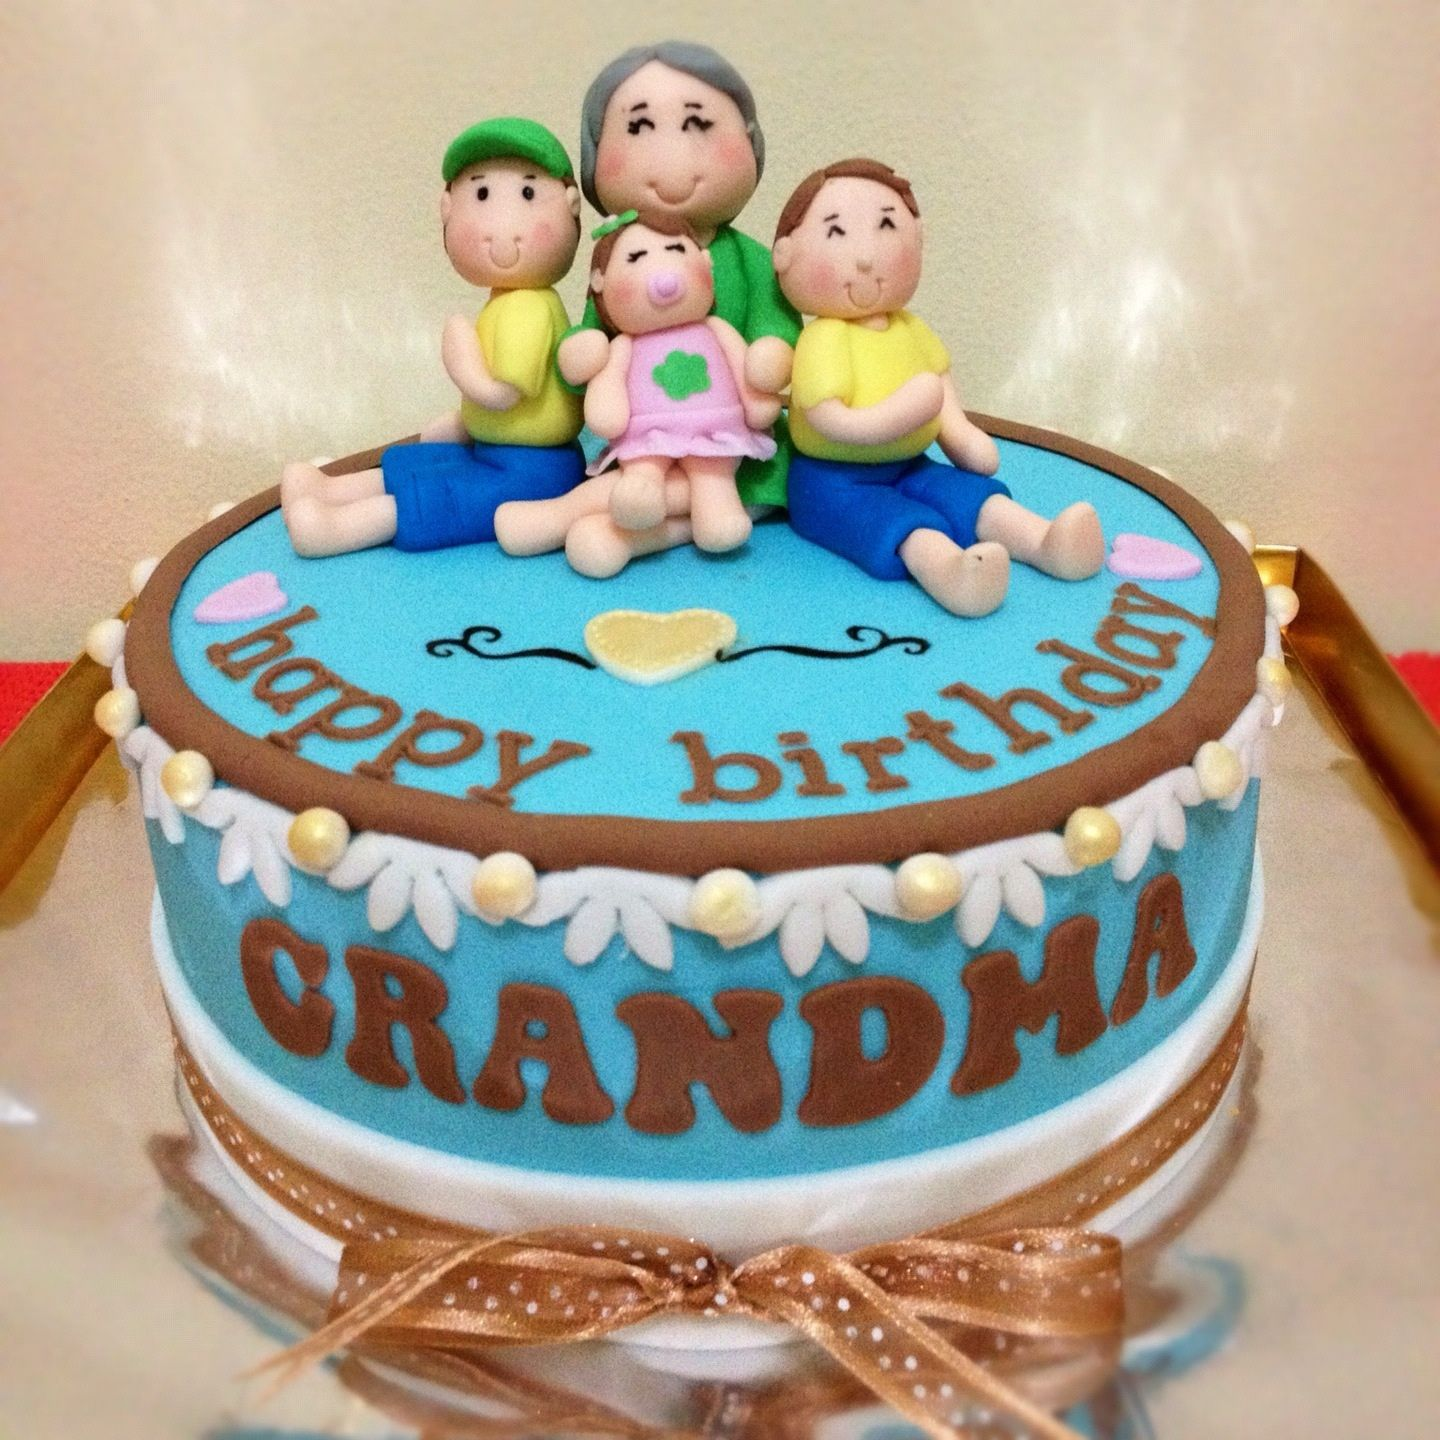 Birthday Cake Images For Grandfather : birthday cake for grandma Cupcake, Snowball and Cakes